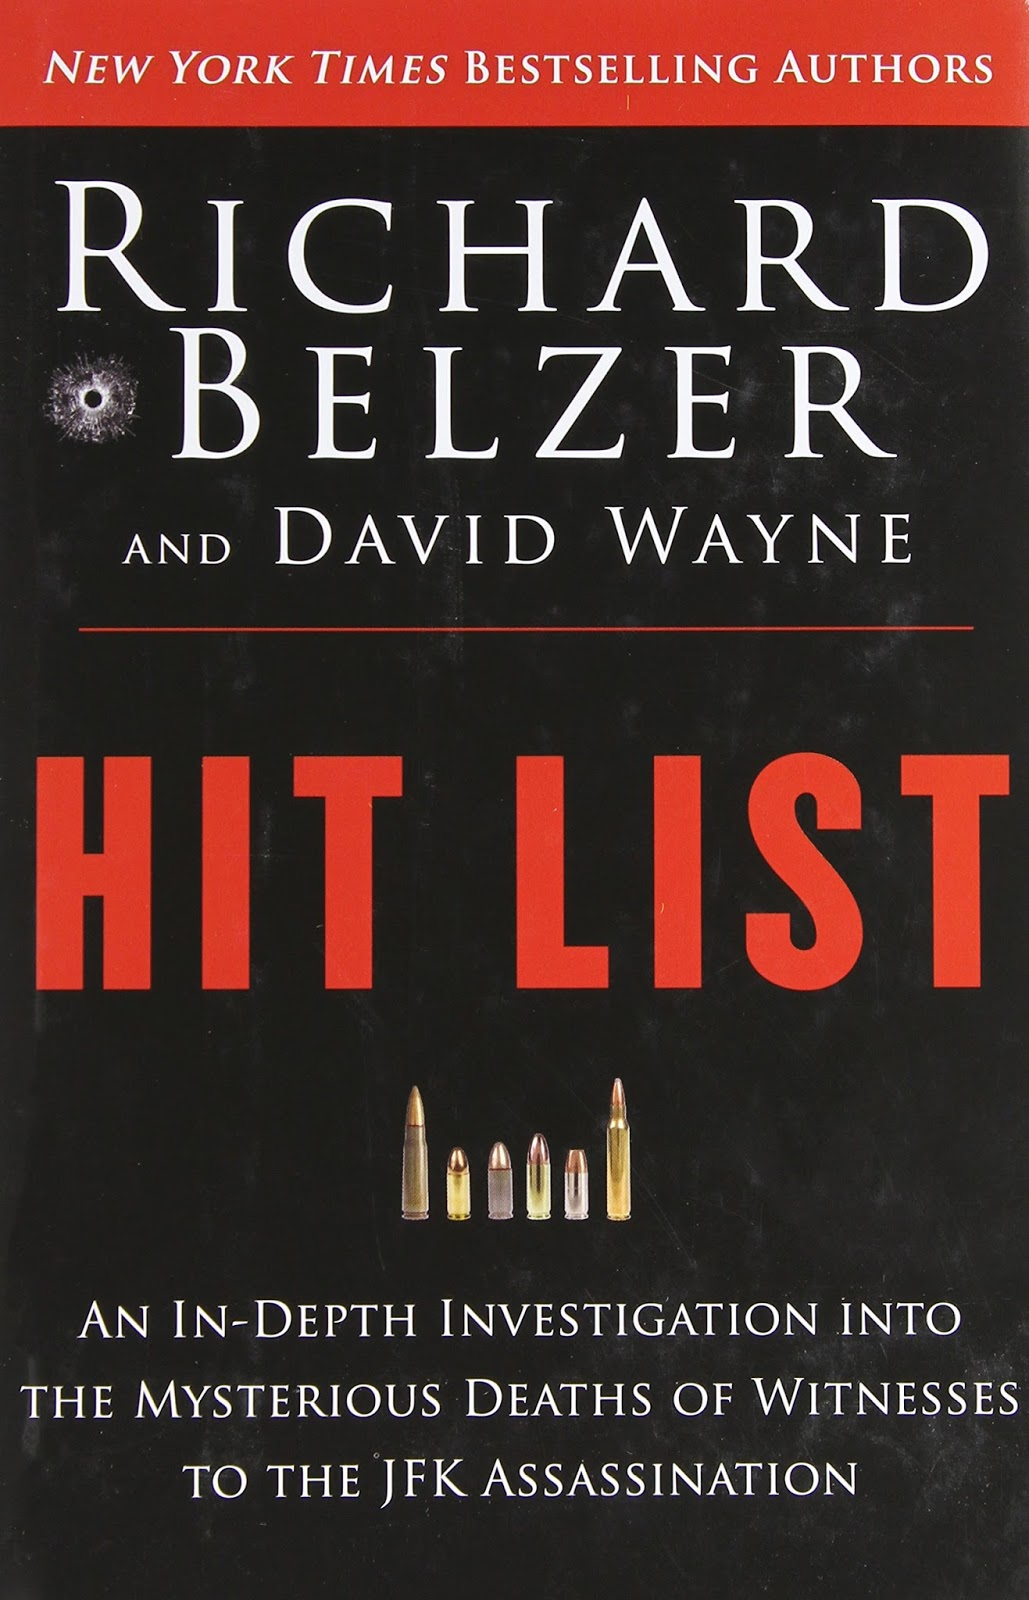 my top plus favorite jfk assassination books favorite dvds 6 hit list an in depth investigation into the mysterious deaths of witnesses to the jfk assassination by richard belzer and david wayne 2013